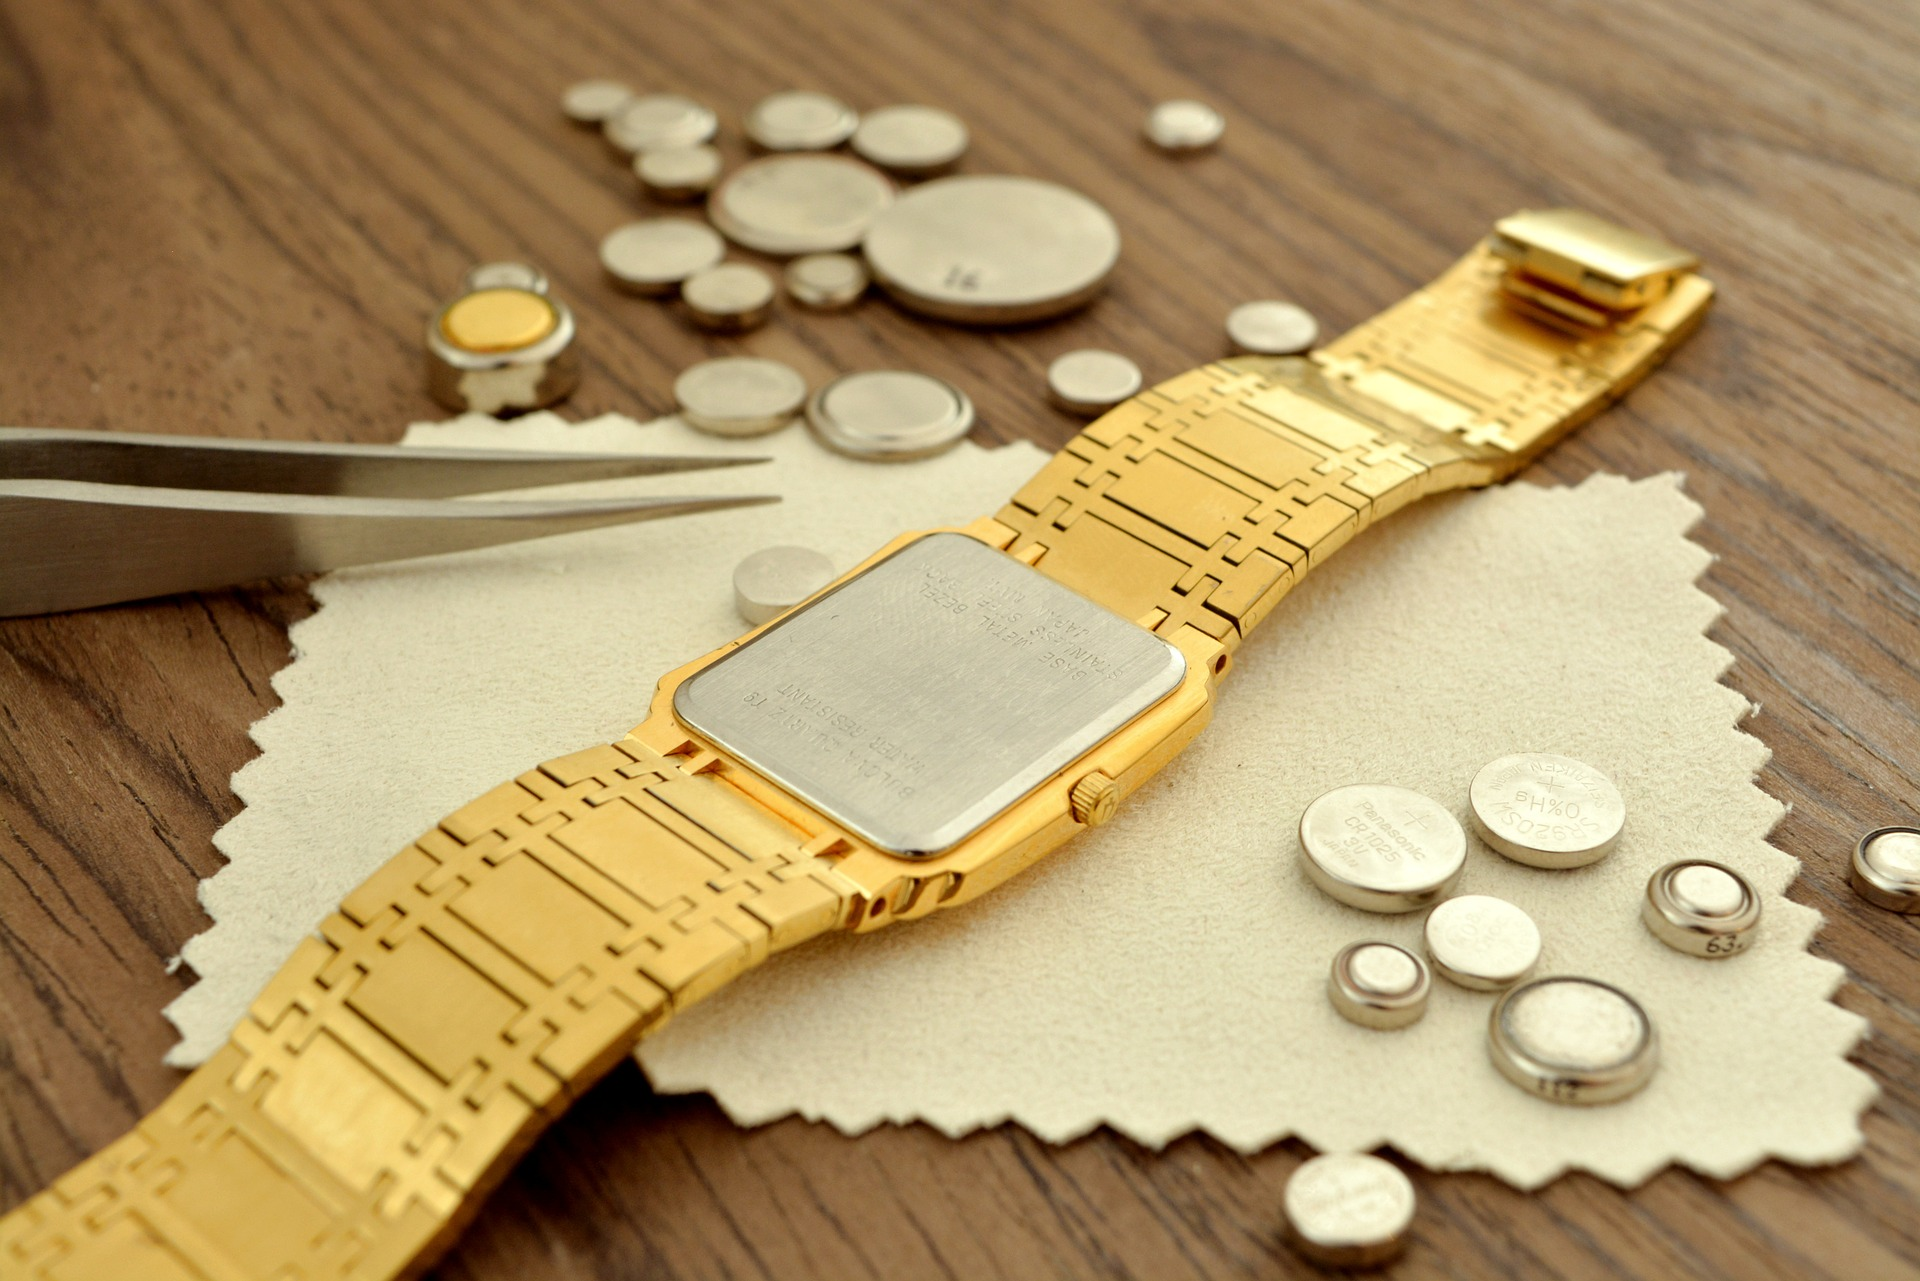 A gold watch on a table with button batteries scattered around the watch